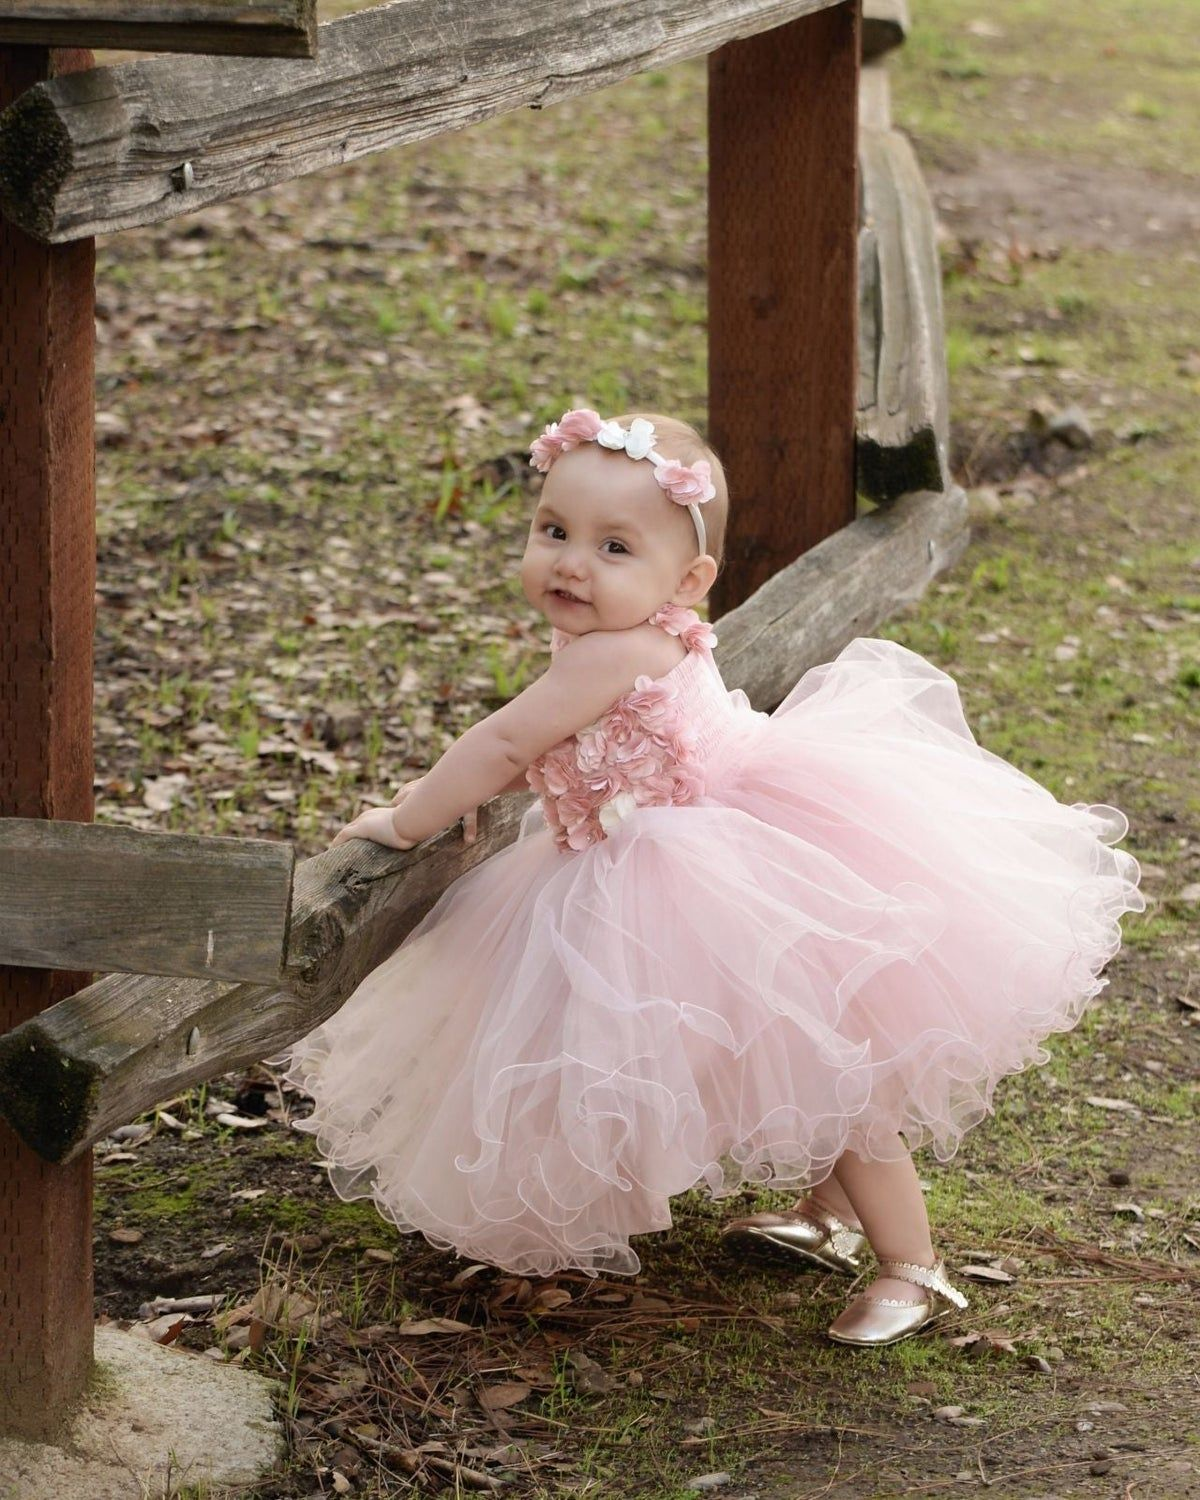 Size 1 Year Old Pink Birthday Dress And Baby Girl Birthday Dress Pink Birthday Dress Infant Flower Girl Dress